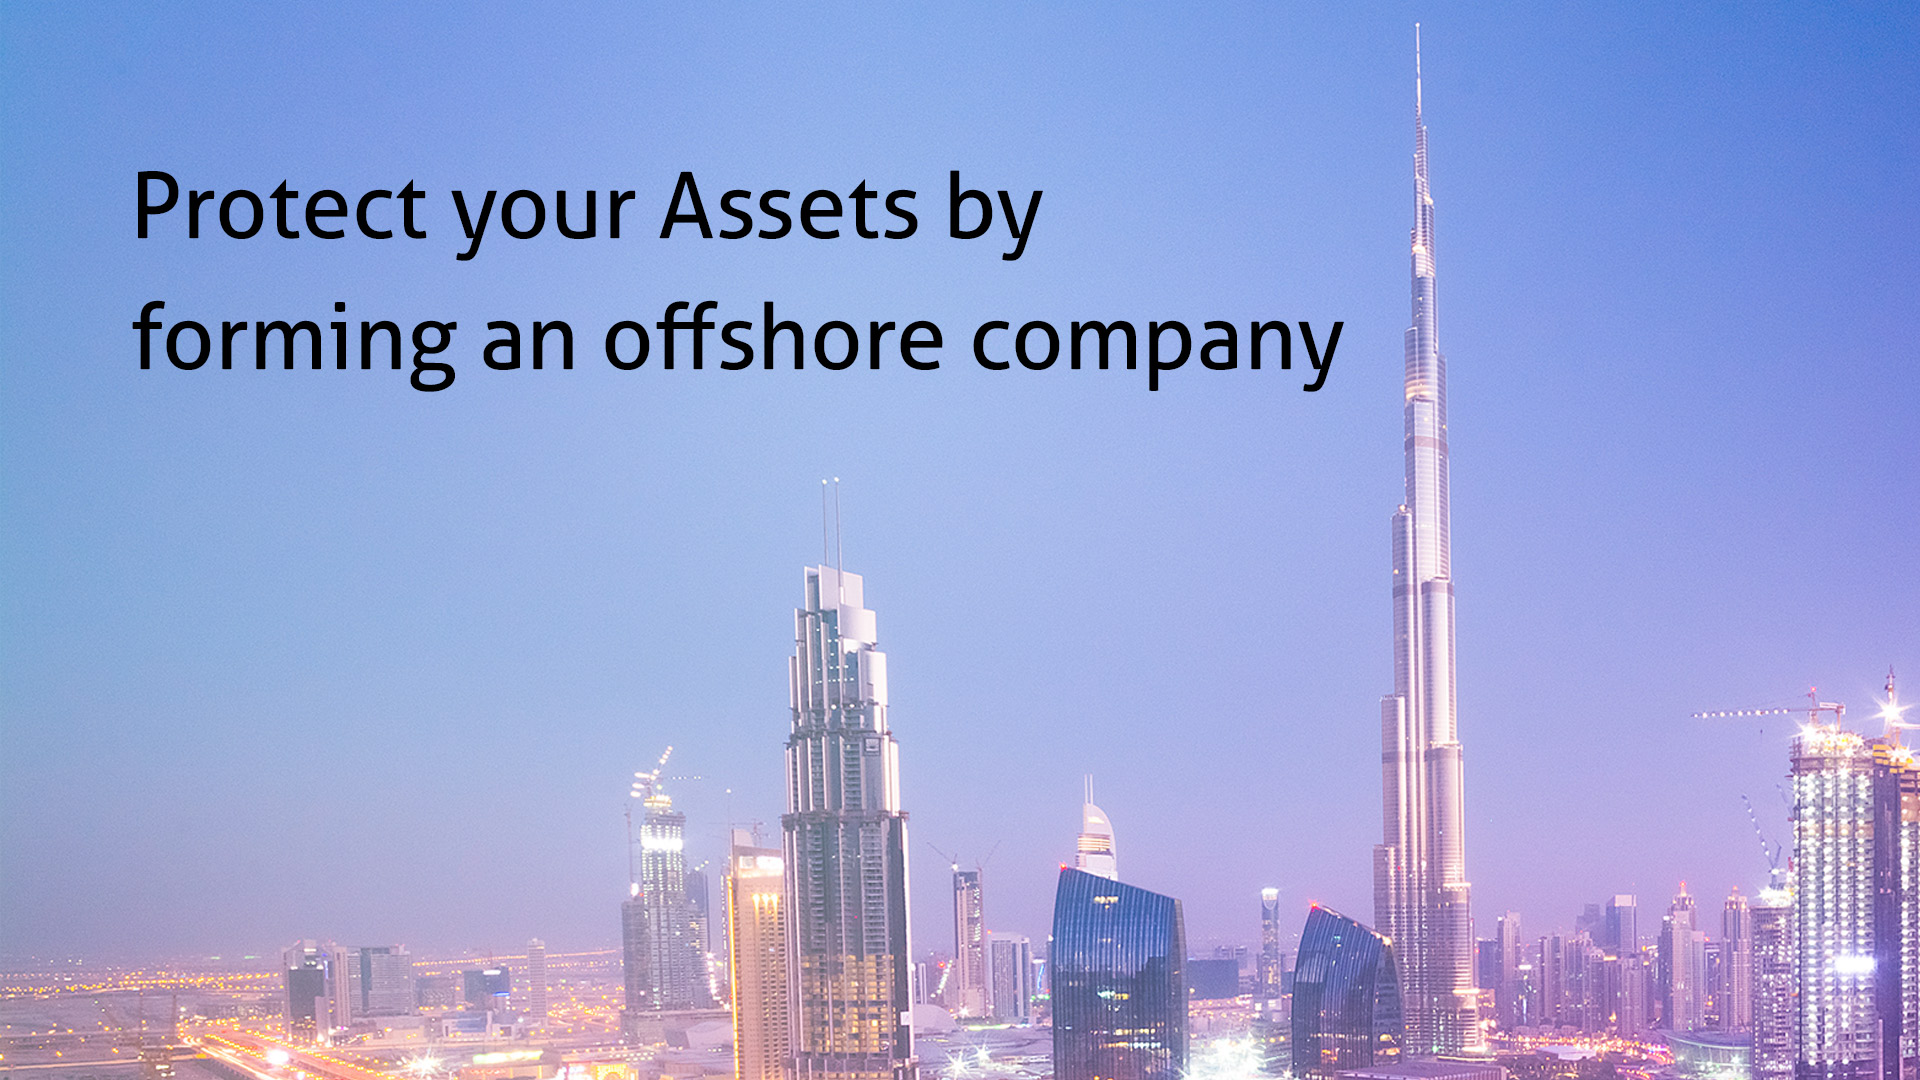 Protect your Assets by forming an offshore company